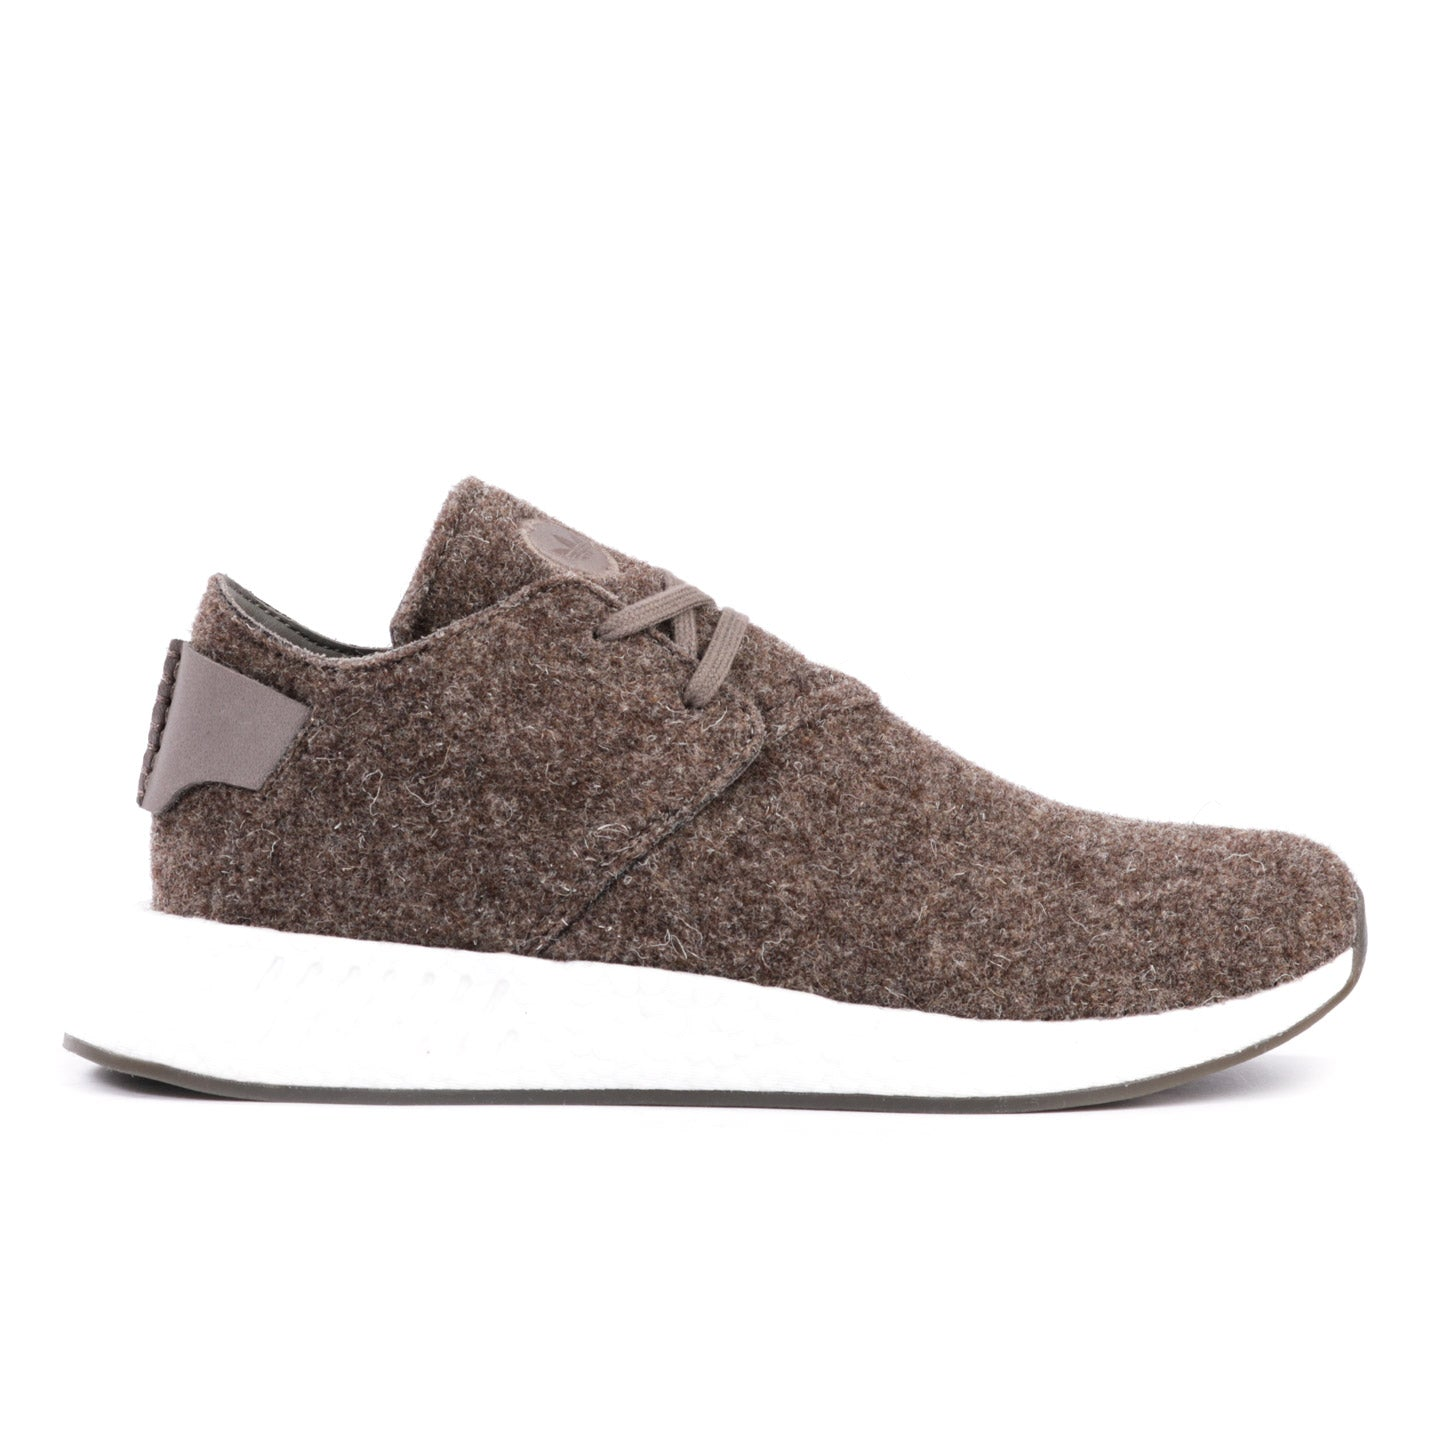 Nmd C2 BrownToday WingsHorns Simple Originals By Adidas Clothing eQdBrCWxoE